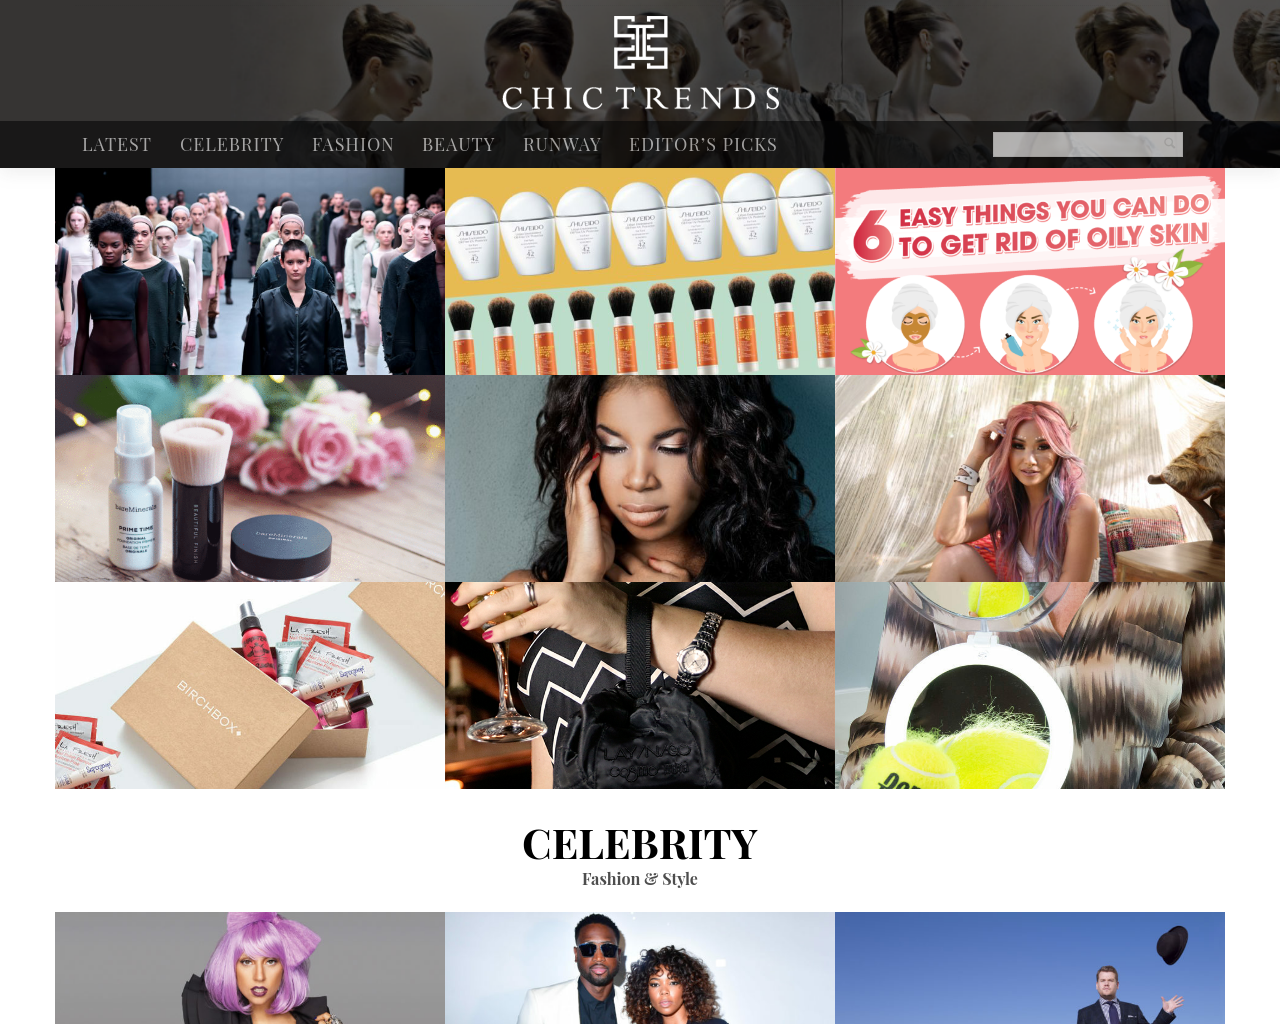 Chic-Trends-Advertising-Reviews-Pricing